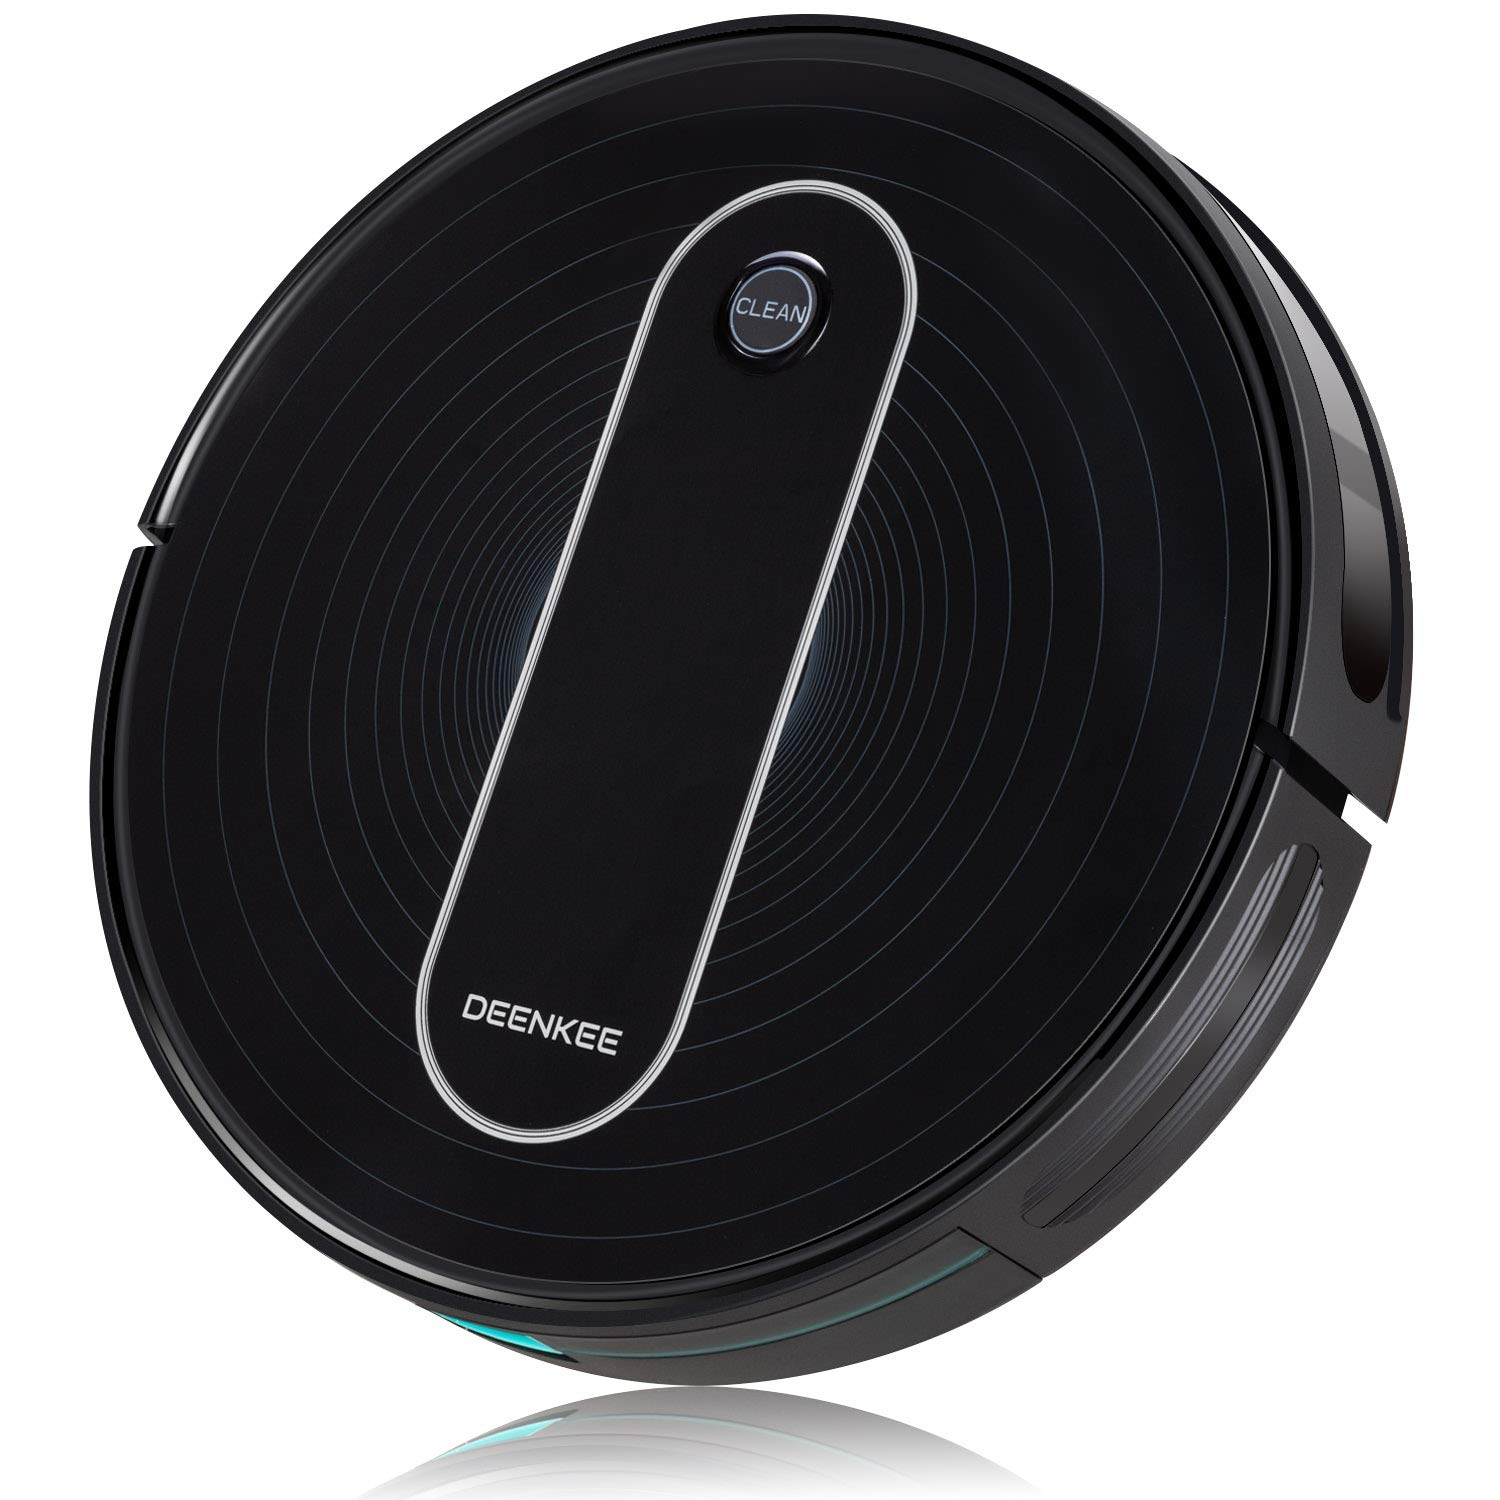 DEENKEE Robot Vacuum,1500Pa High Suction,2.8 inch Super-Thin,6 Cleaning Modes,Quiet,Timing Function,Self-Charging Robotic Vacuum Cleaner for Pet Hair,Hard Floor,Carpet by Deenkee